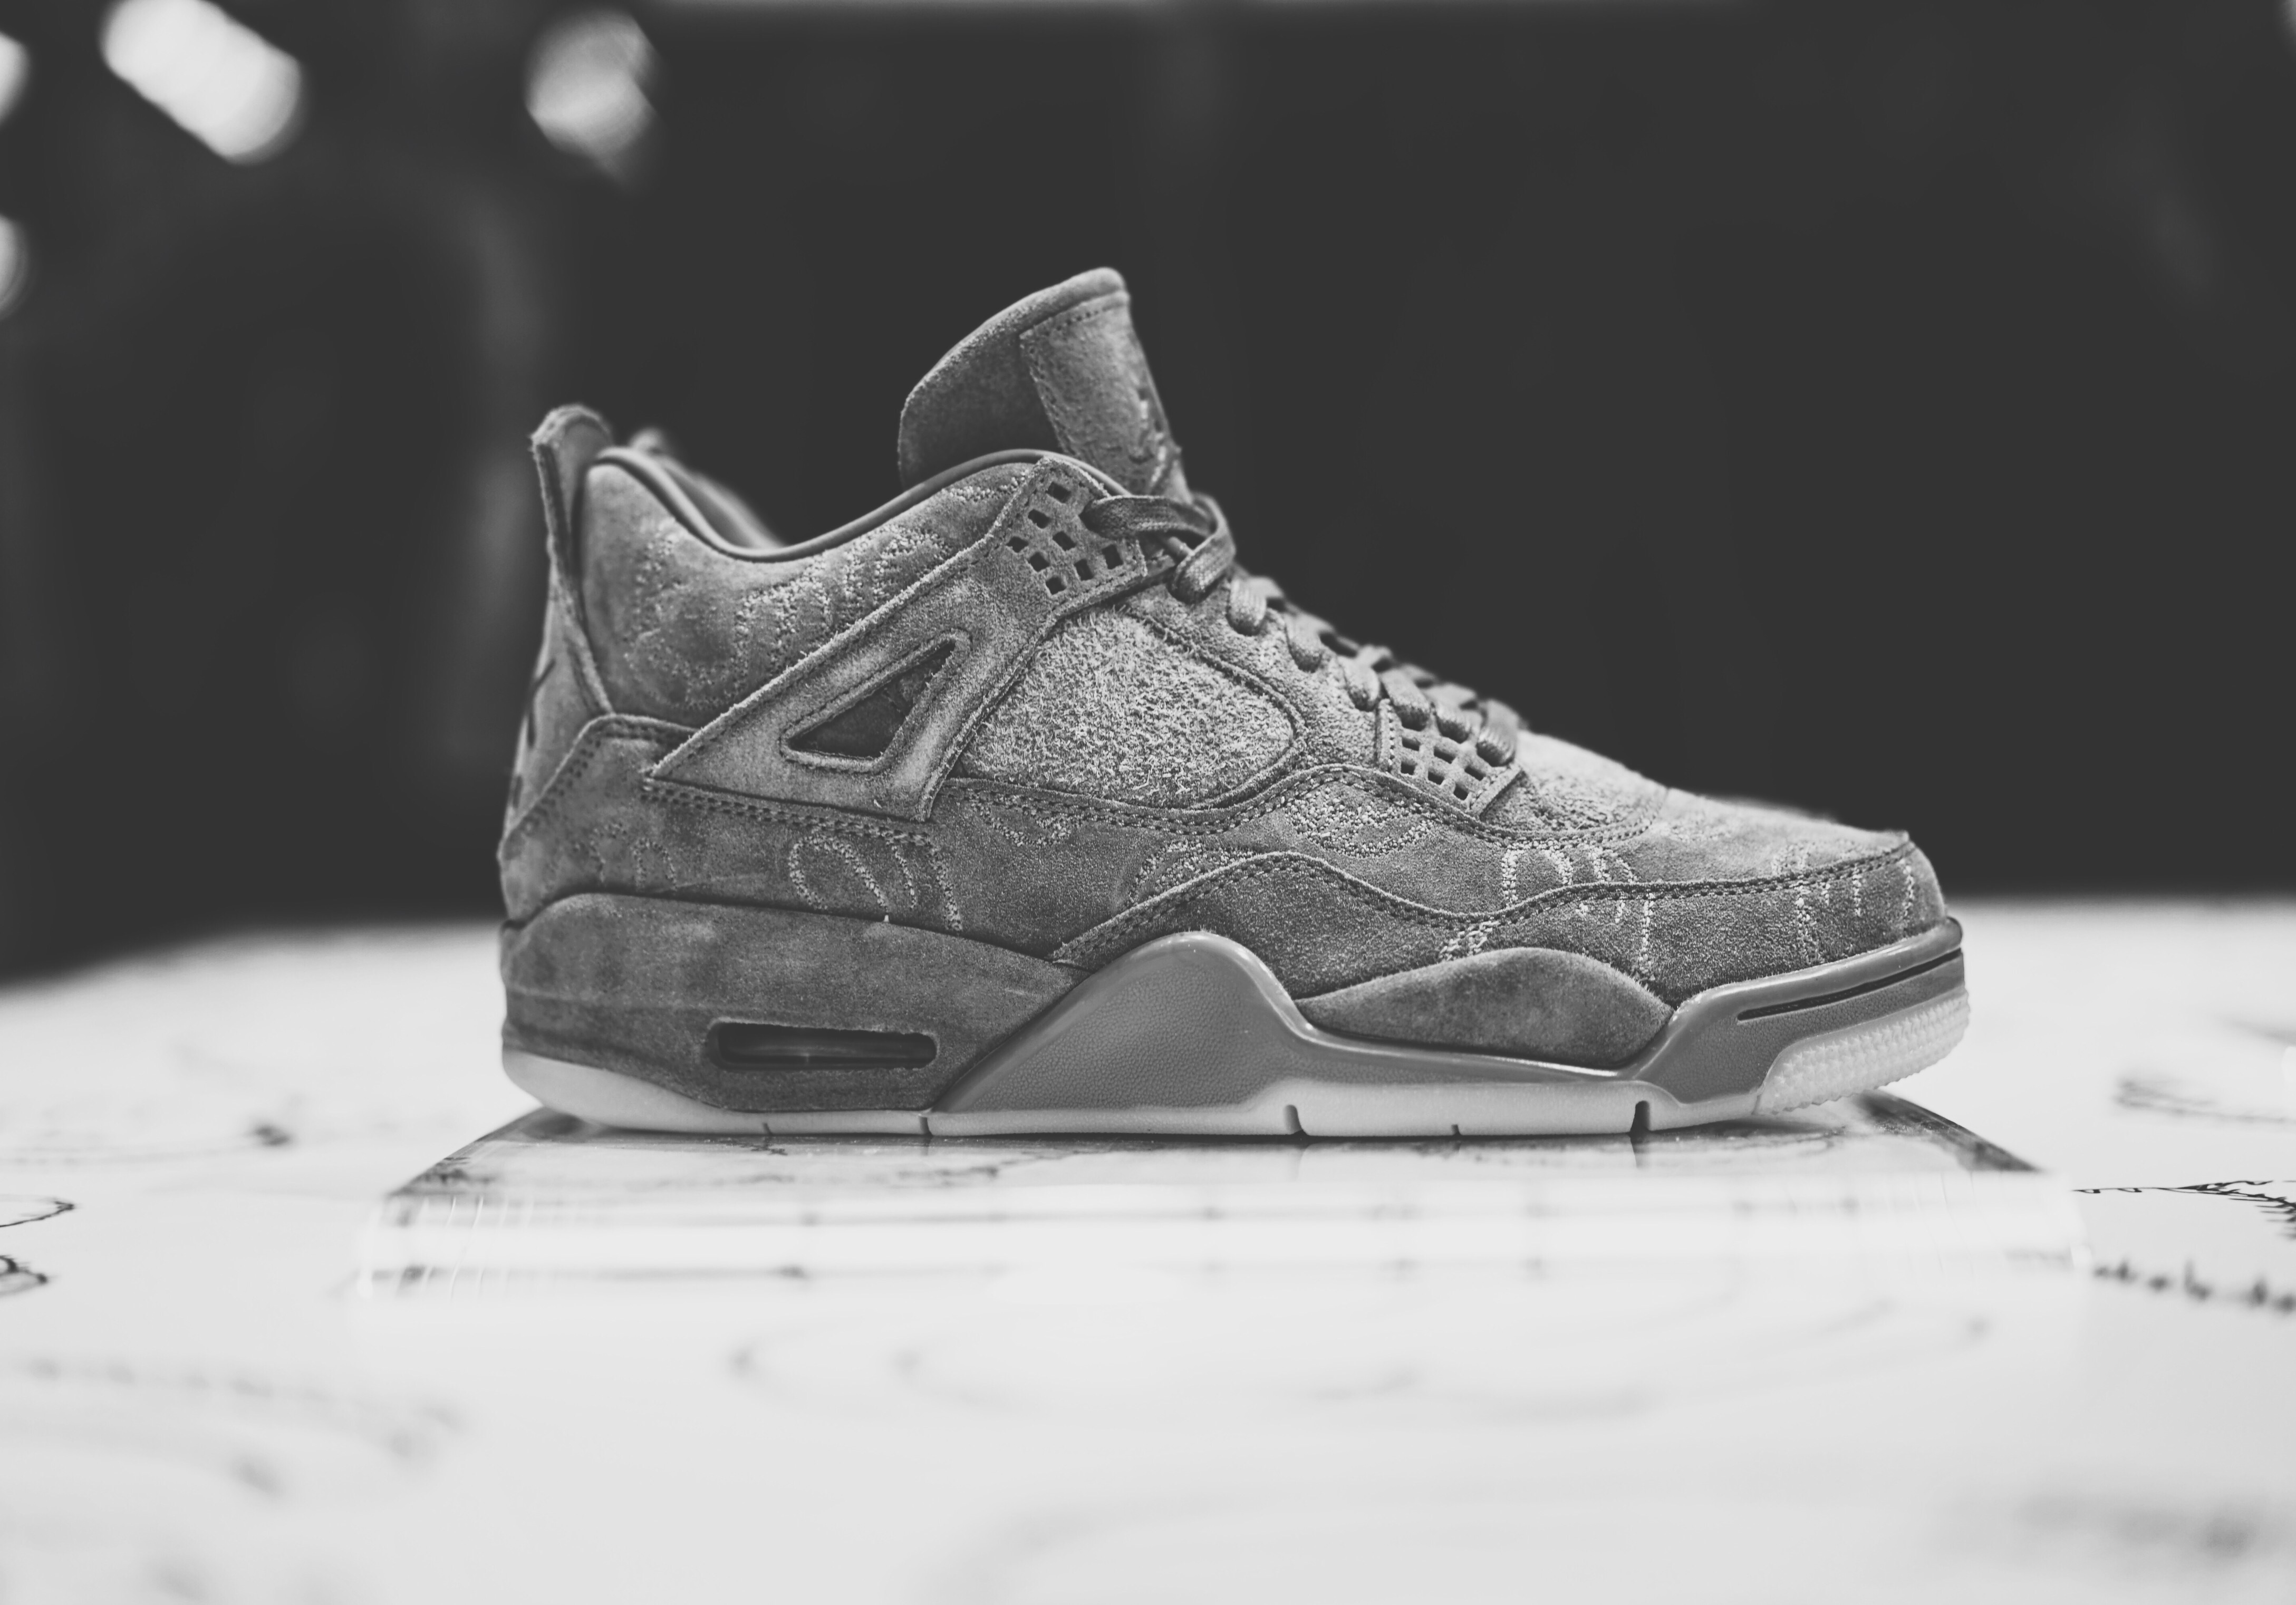 reputable site d6534 3ed47 The Kaws x Air Jordan 4 Will Release Online - WearTesters